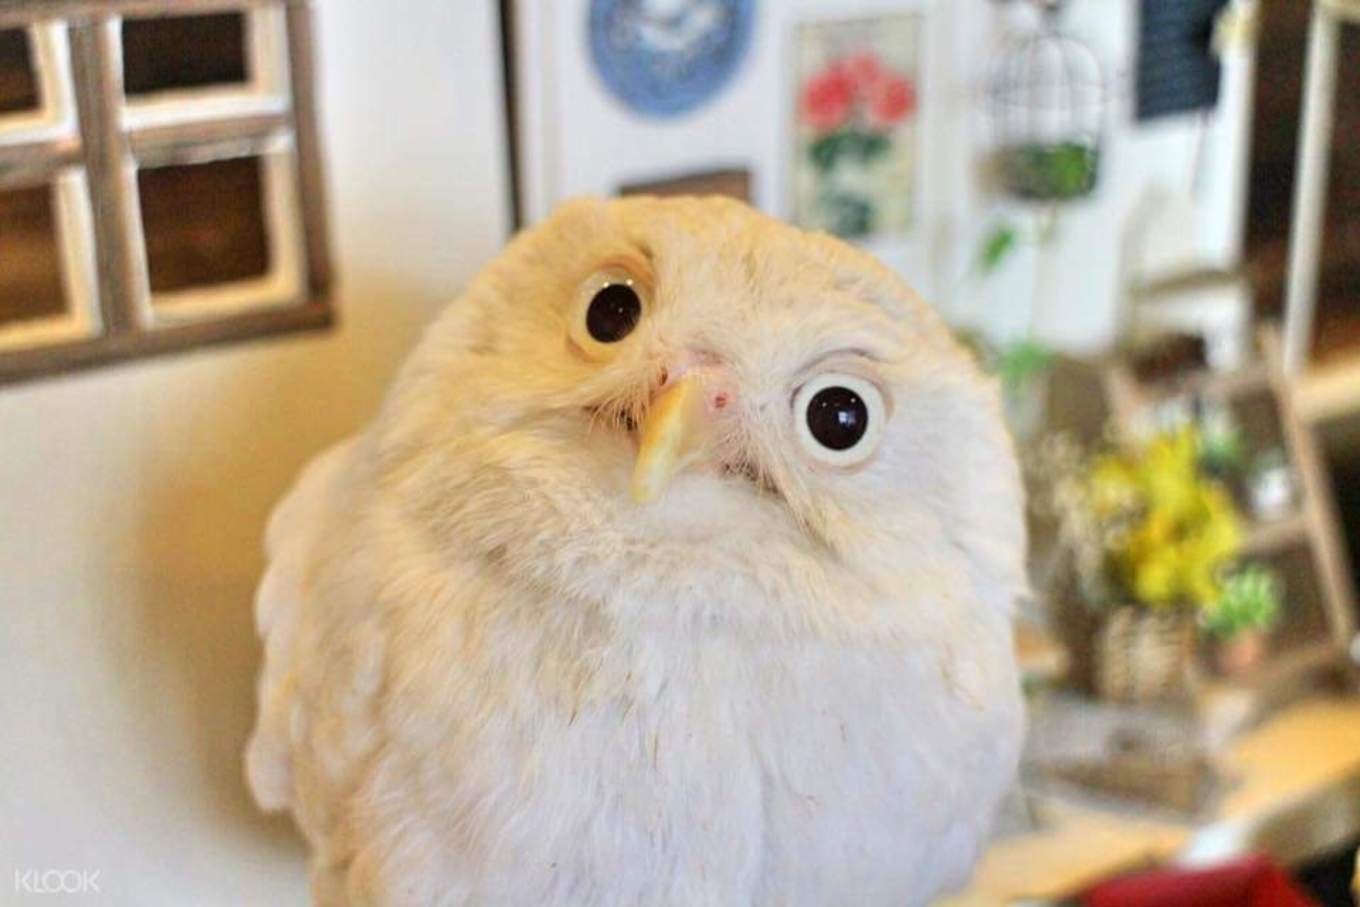 tokyo-subway-guide-owl-cafe